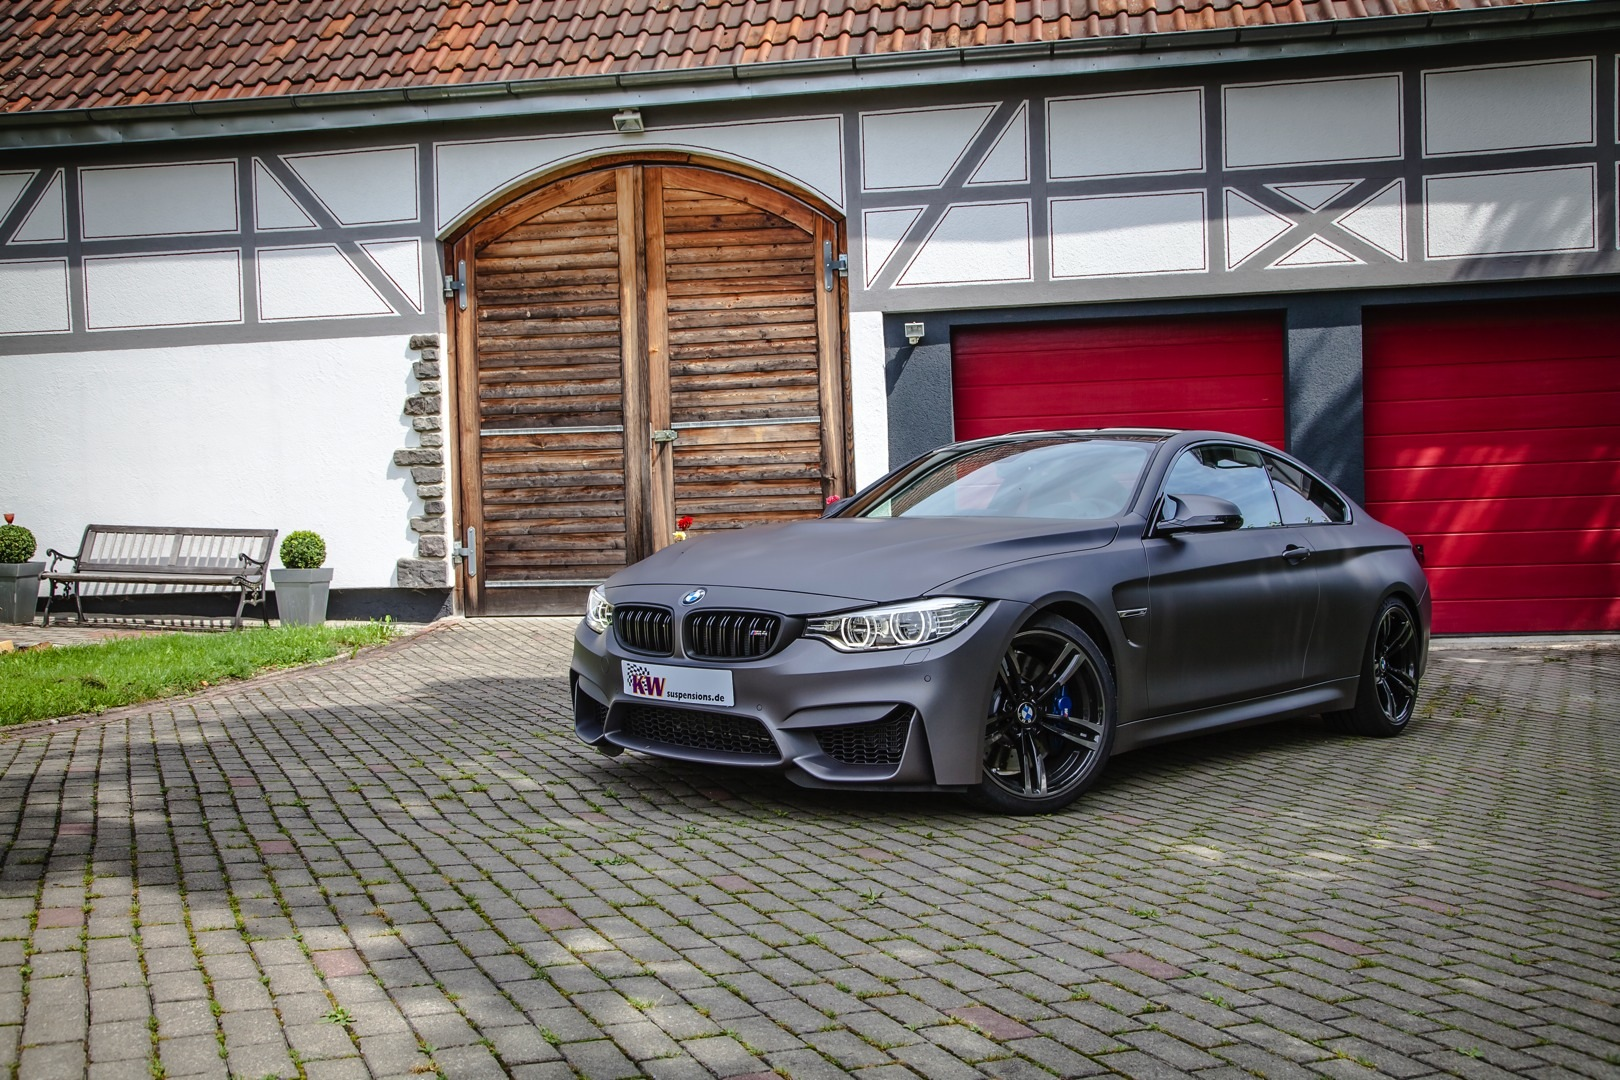 BMW M4 Engine >> KW Kits Now Available for 2015 BMW M3 and M4 - autoevolution